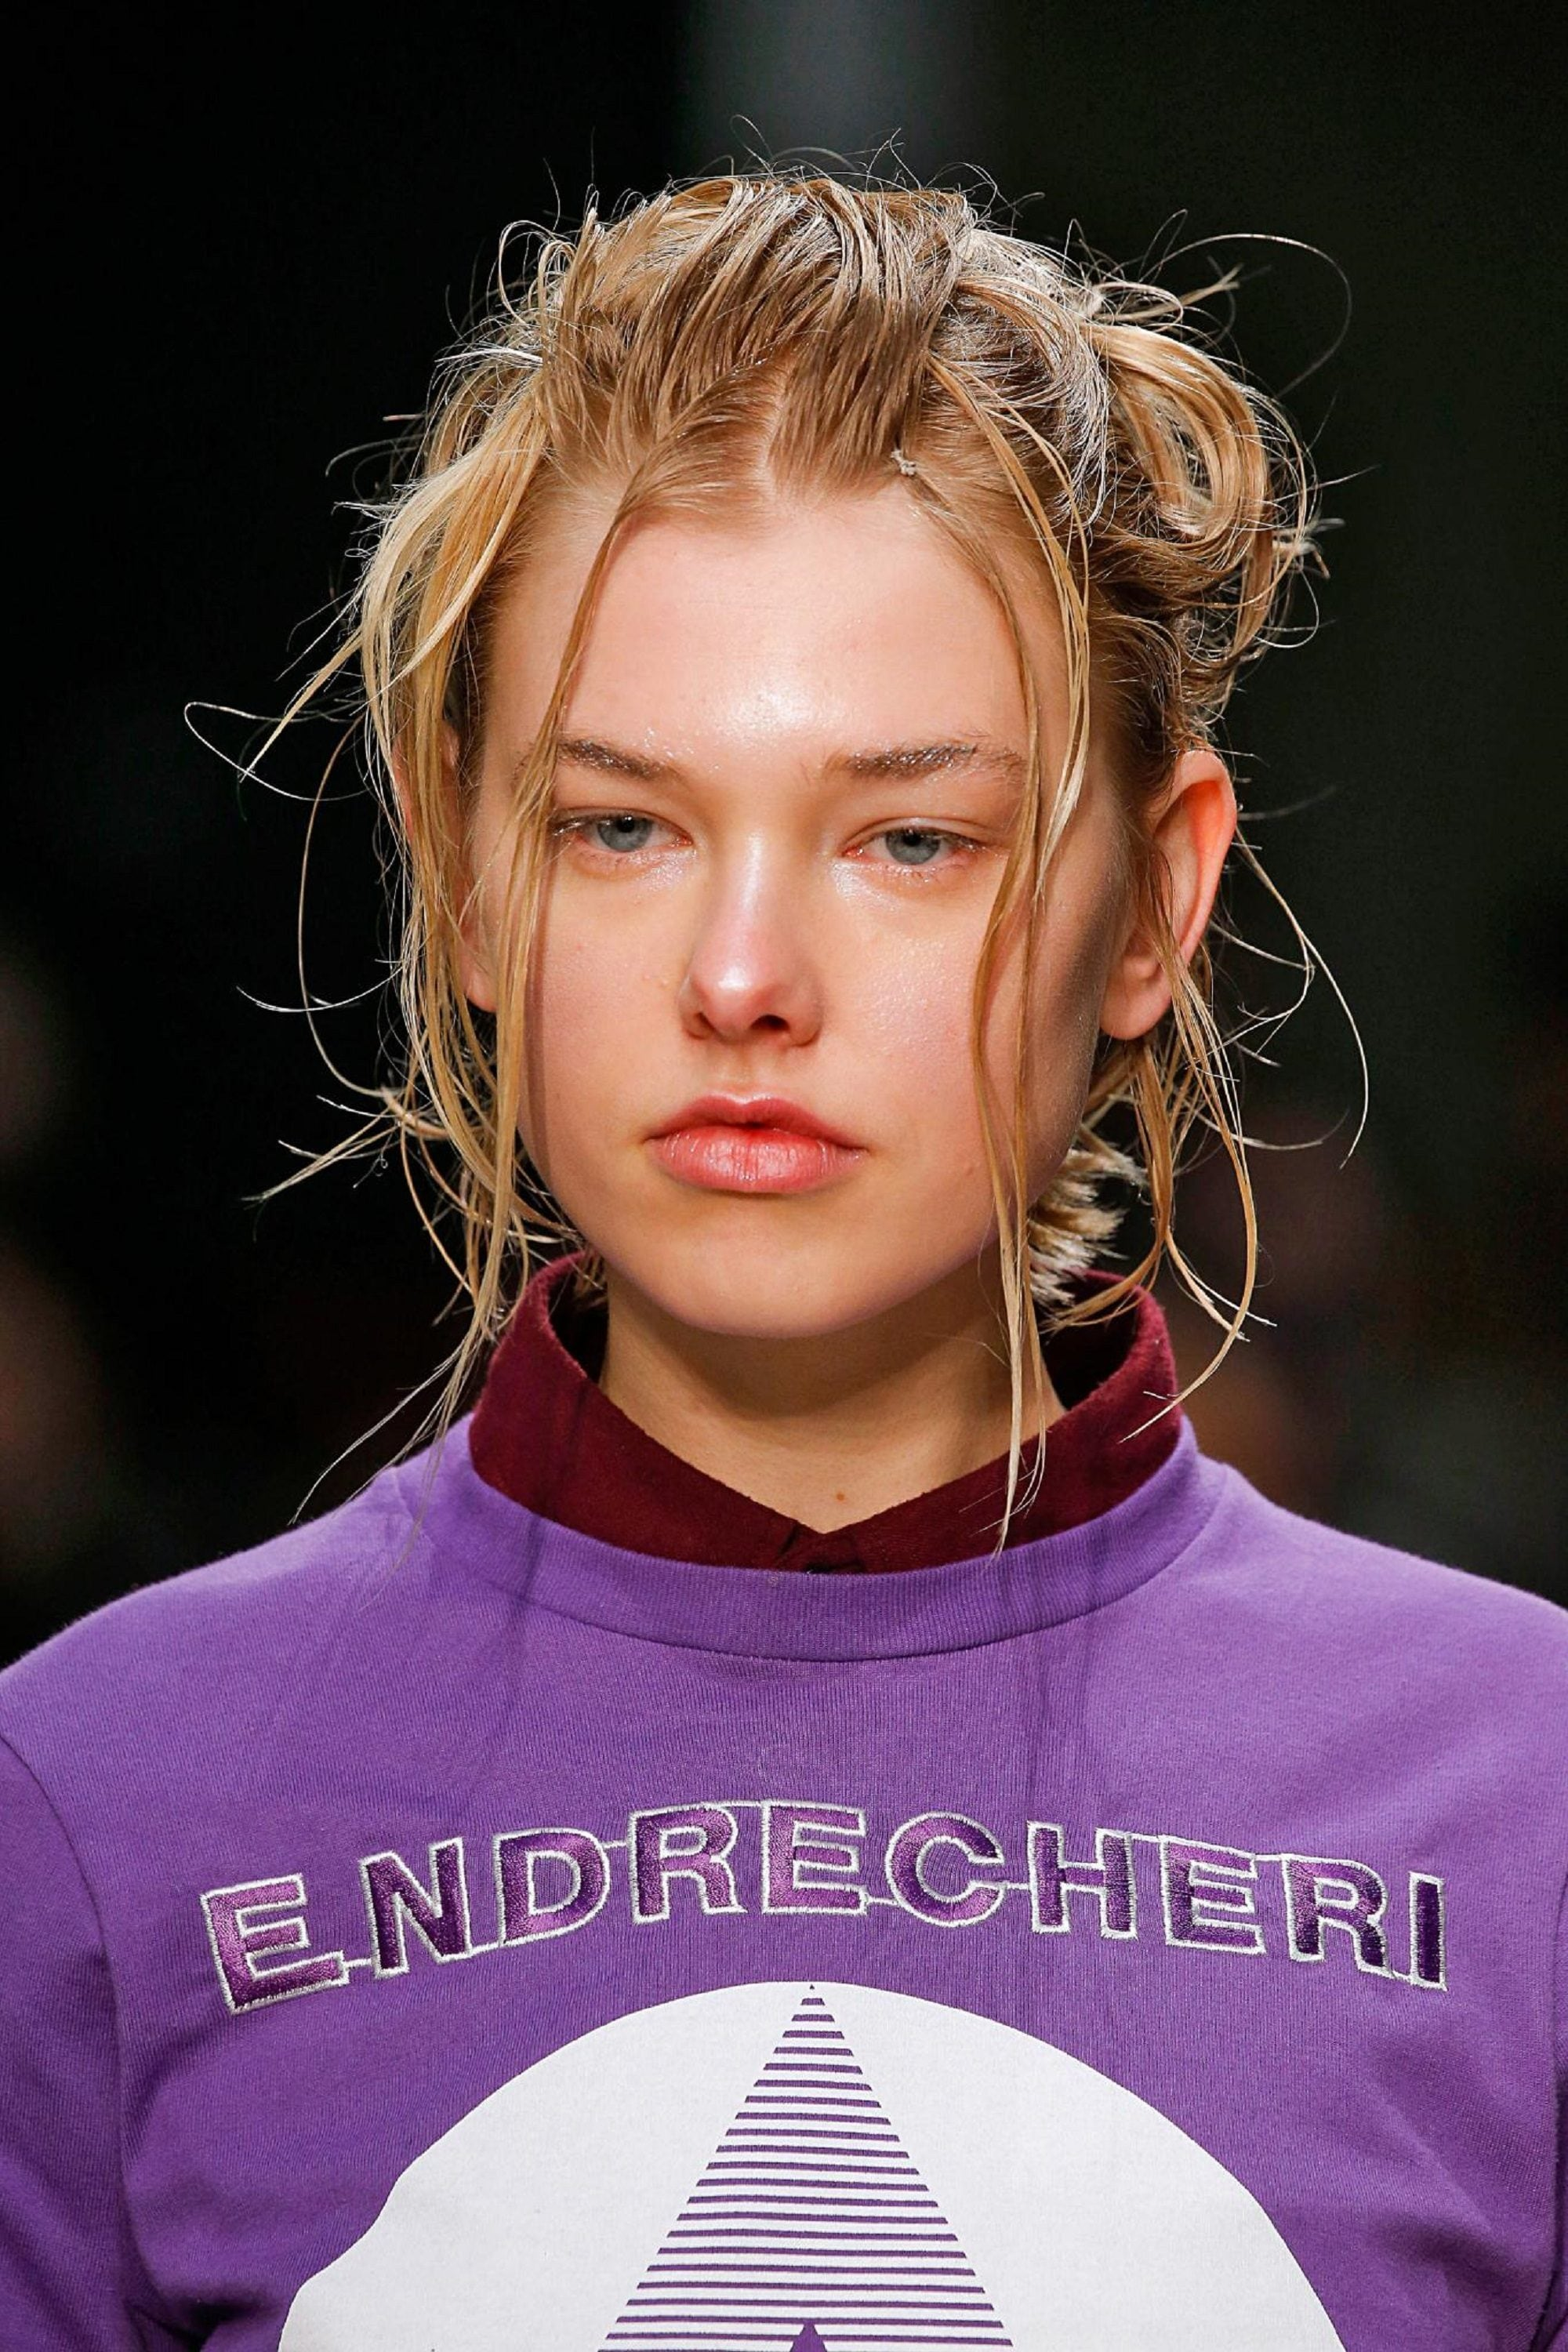 Honey hair color: Runway closeup shot of a woman with purple shirt and honey hair in a messy updo